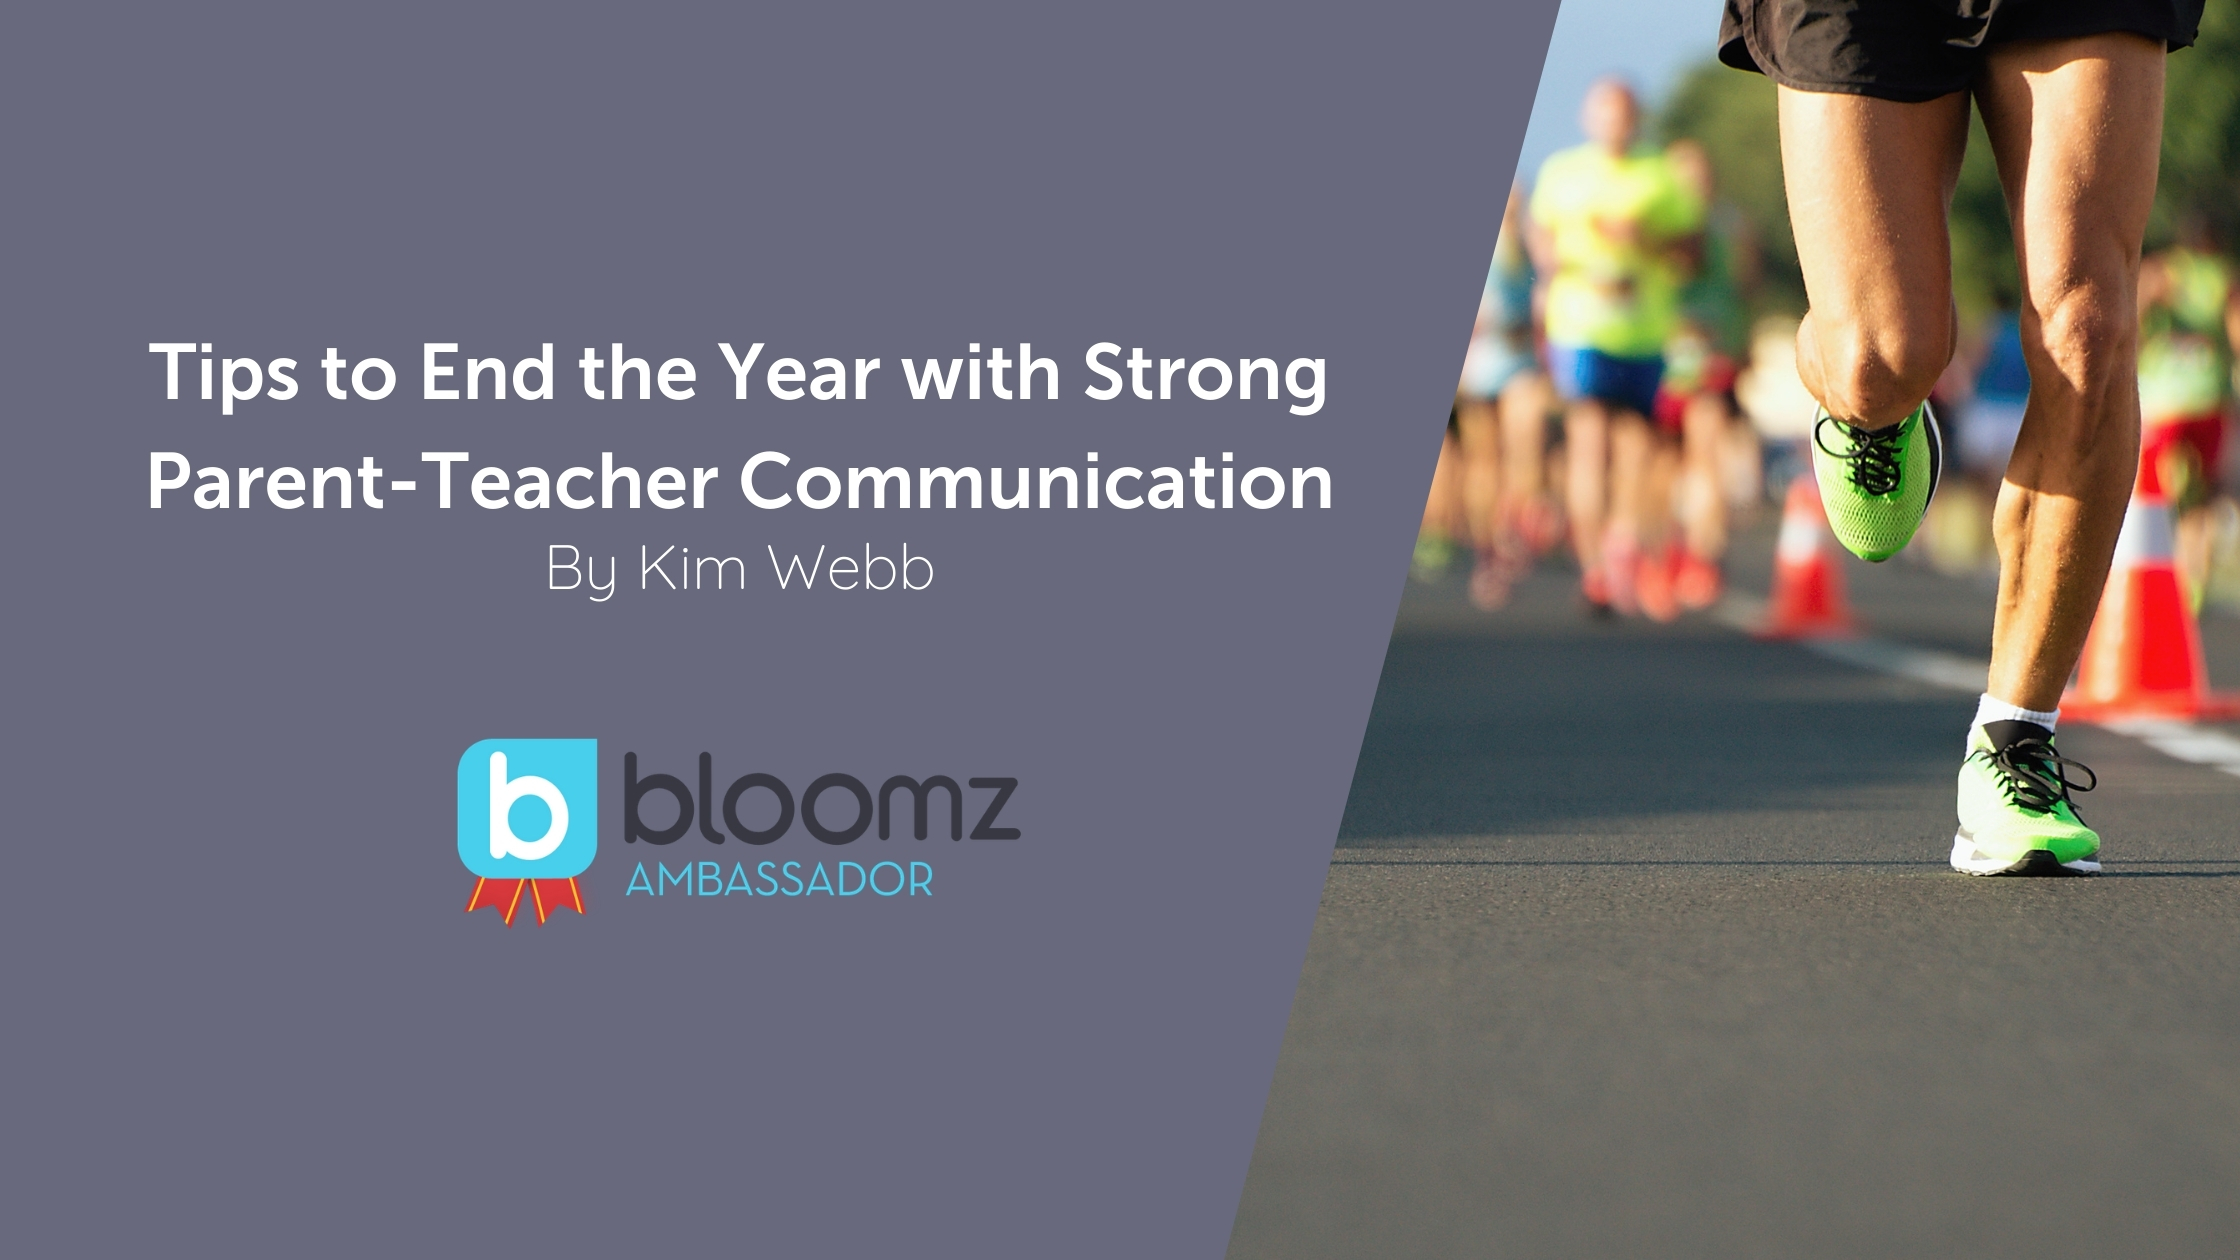 Tips to End the Year with Strong Parent-Teacher Communication